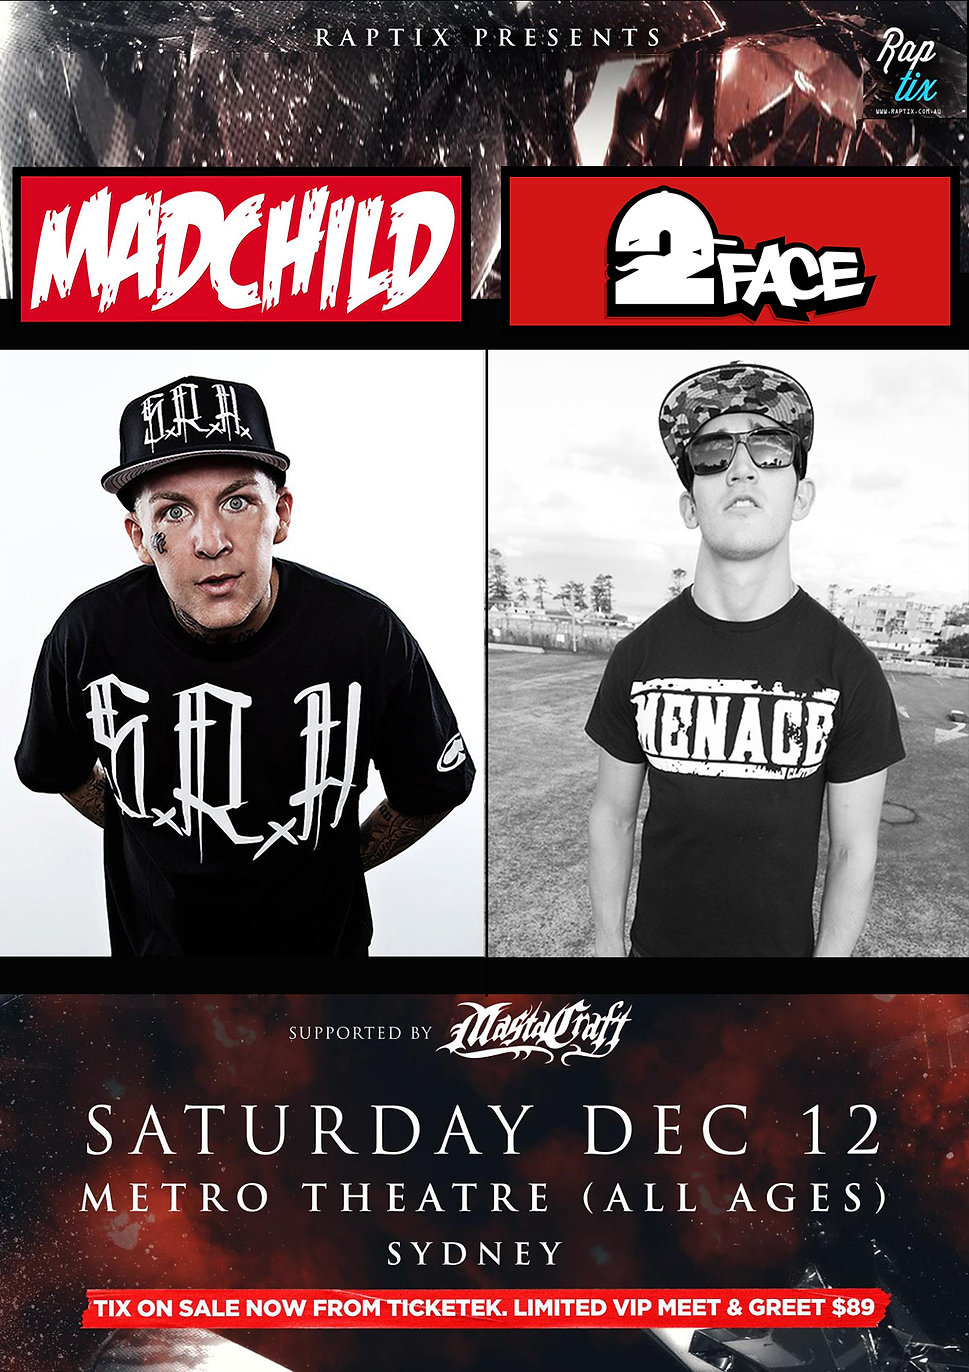 2Face_Madchild_Poster.jpg